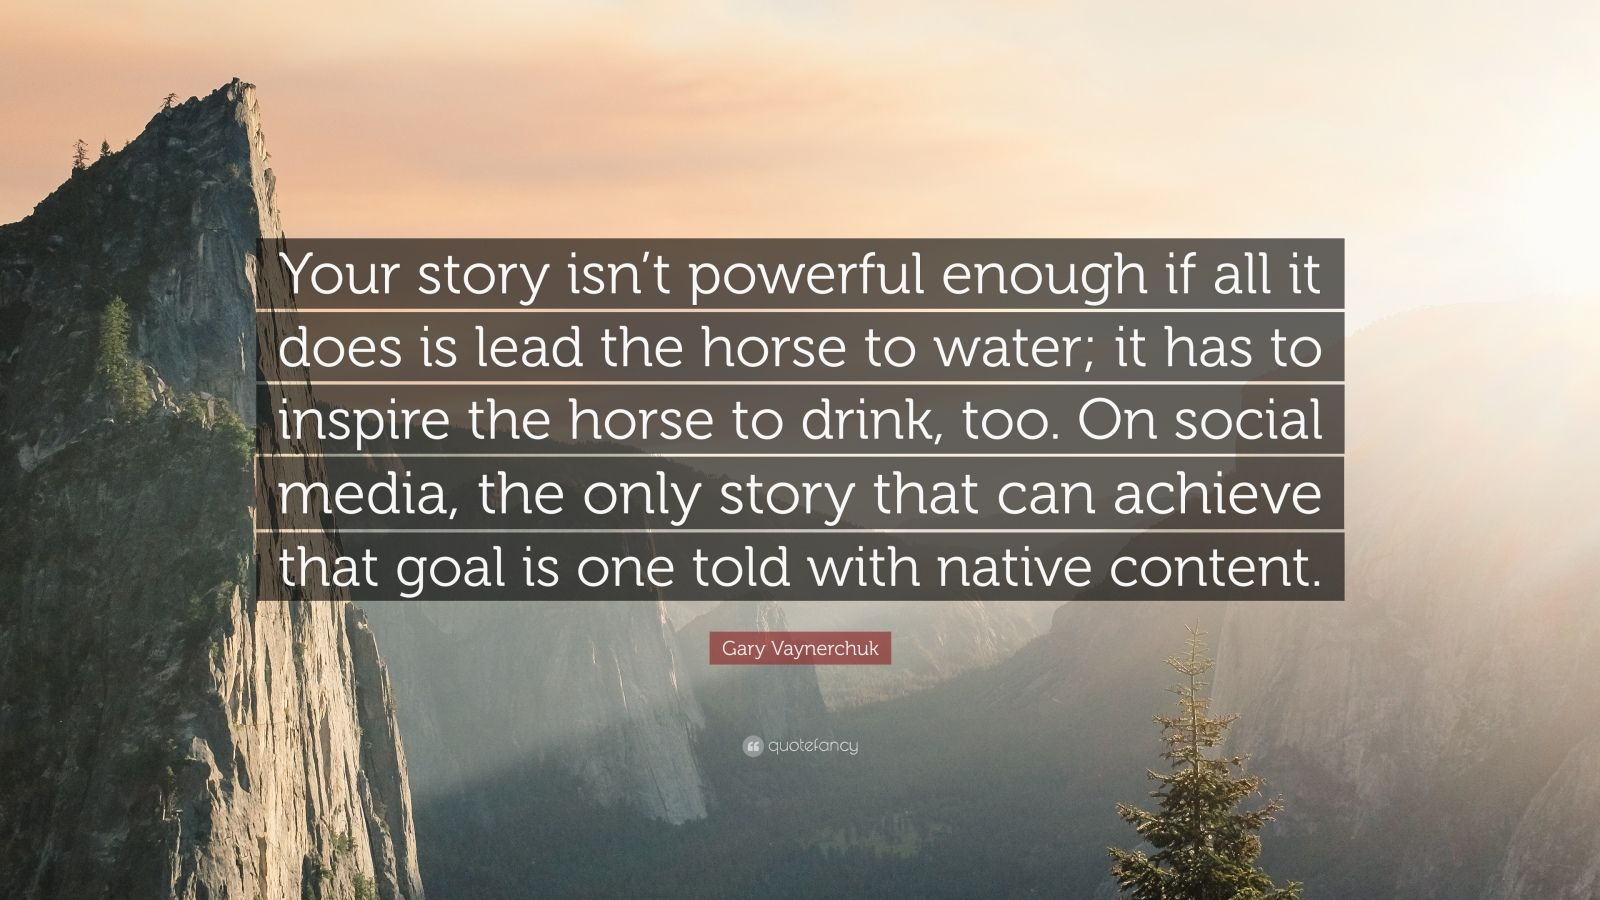 "Gary Vaynerchuk Quote: ""Your story isn't powerful enough if all it does is lead the horse to water; it has to inspire the horse to drink, too. On social media, the only story that can achieve that goal is one told with native content."""